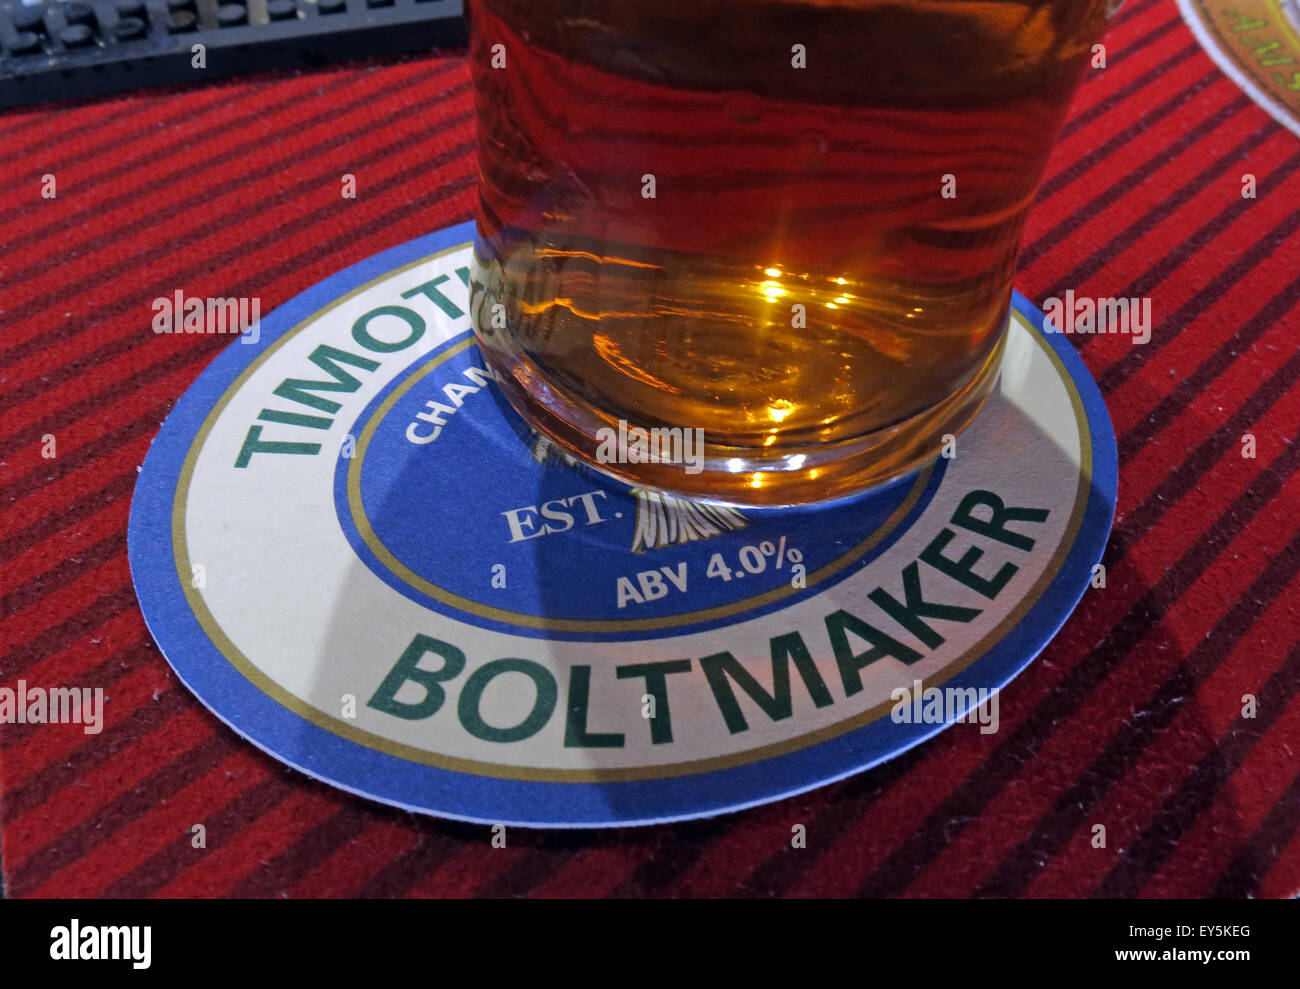 ale,beer,CAMRA,realale,real,traditional,pub,bar,drink,drinking,booze,boozer,alcohol,alcoholic,pints,large,award,winning,landlord,best,coaster,beermat,abv,%,abuse,Timothy Taylor,Boltmaker Bitter,boltmaker beer,Best bitter,GoTonySmith,Buy Pictures of,Buy Images Of